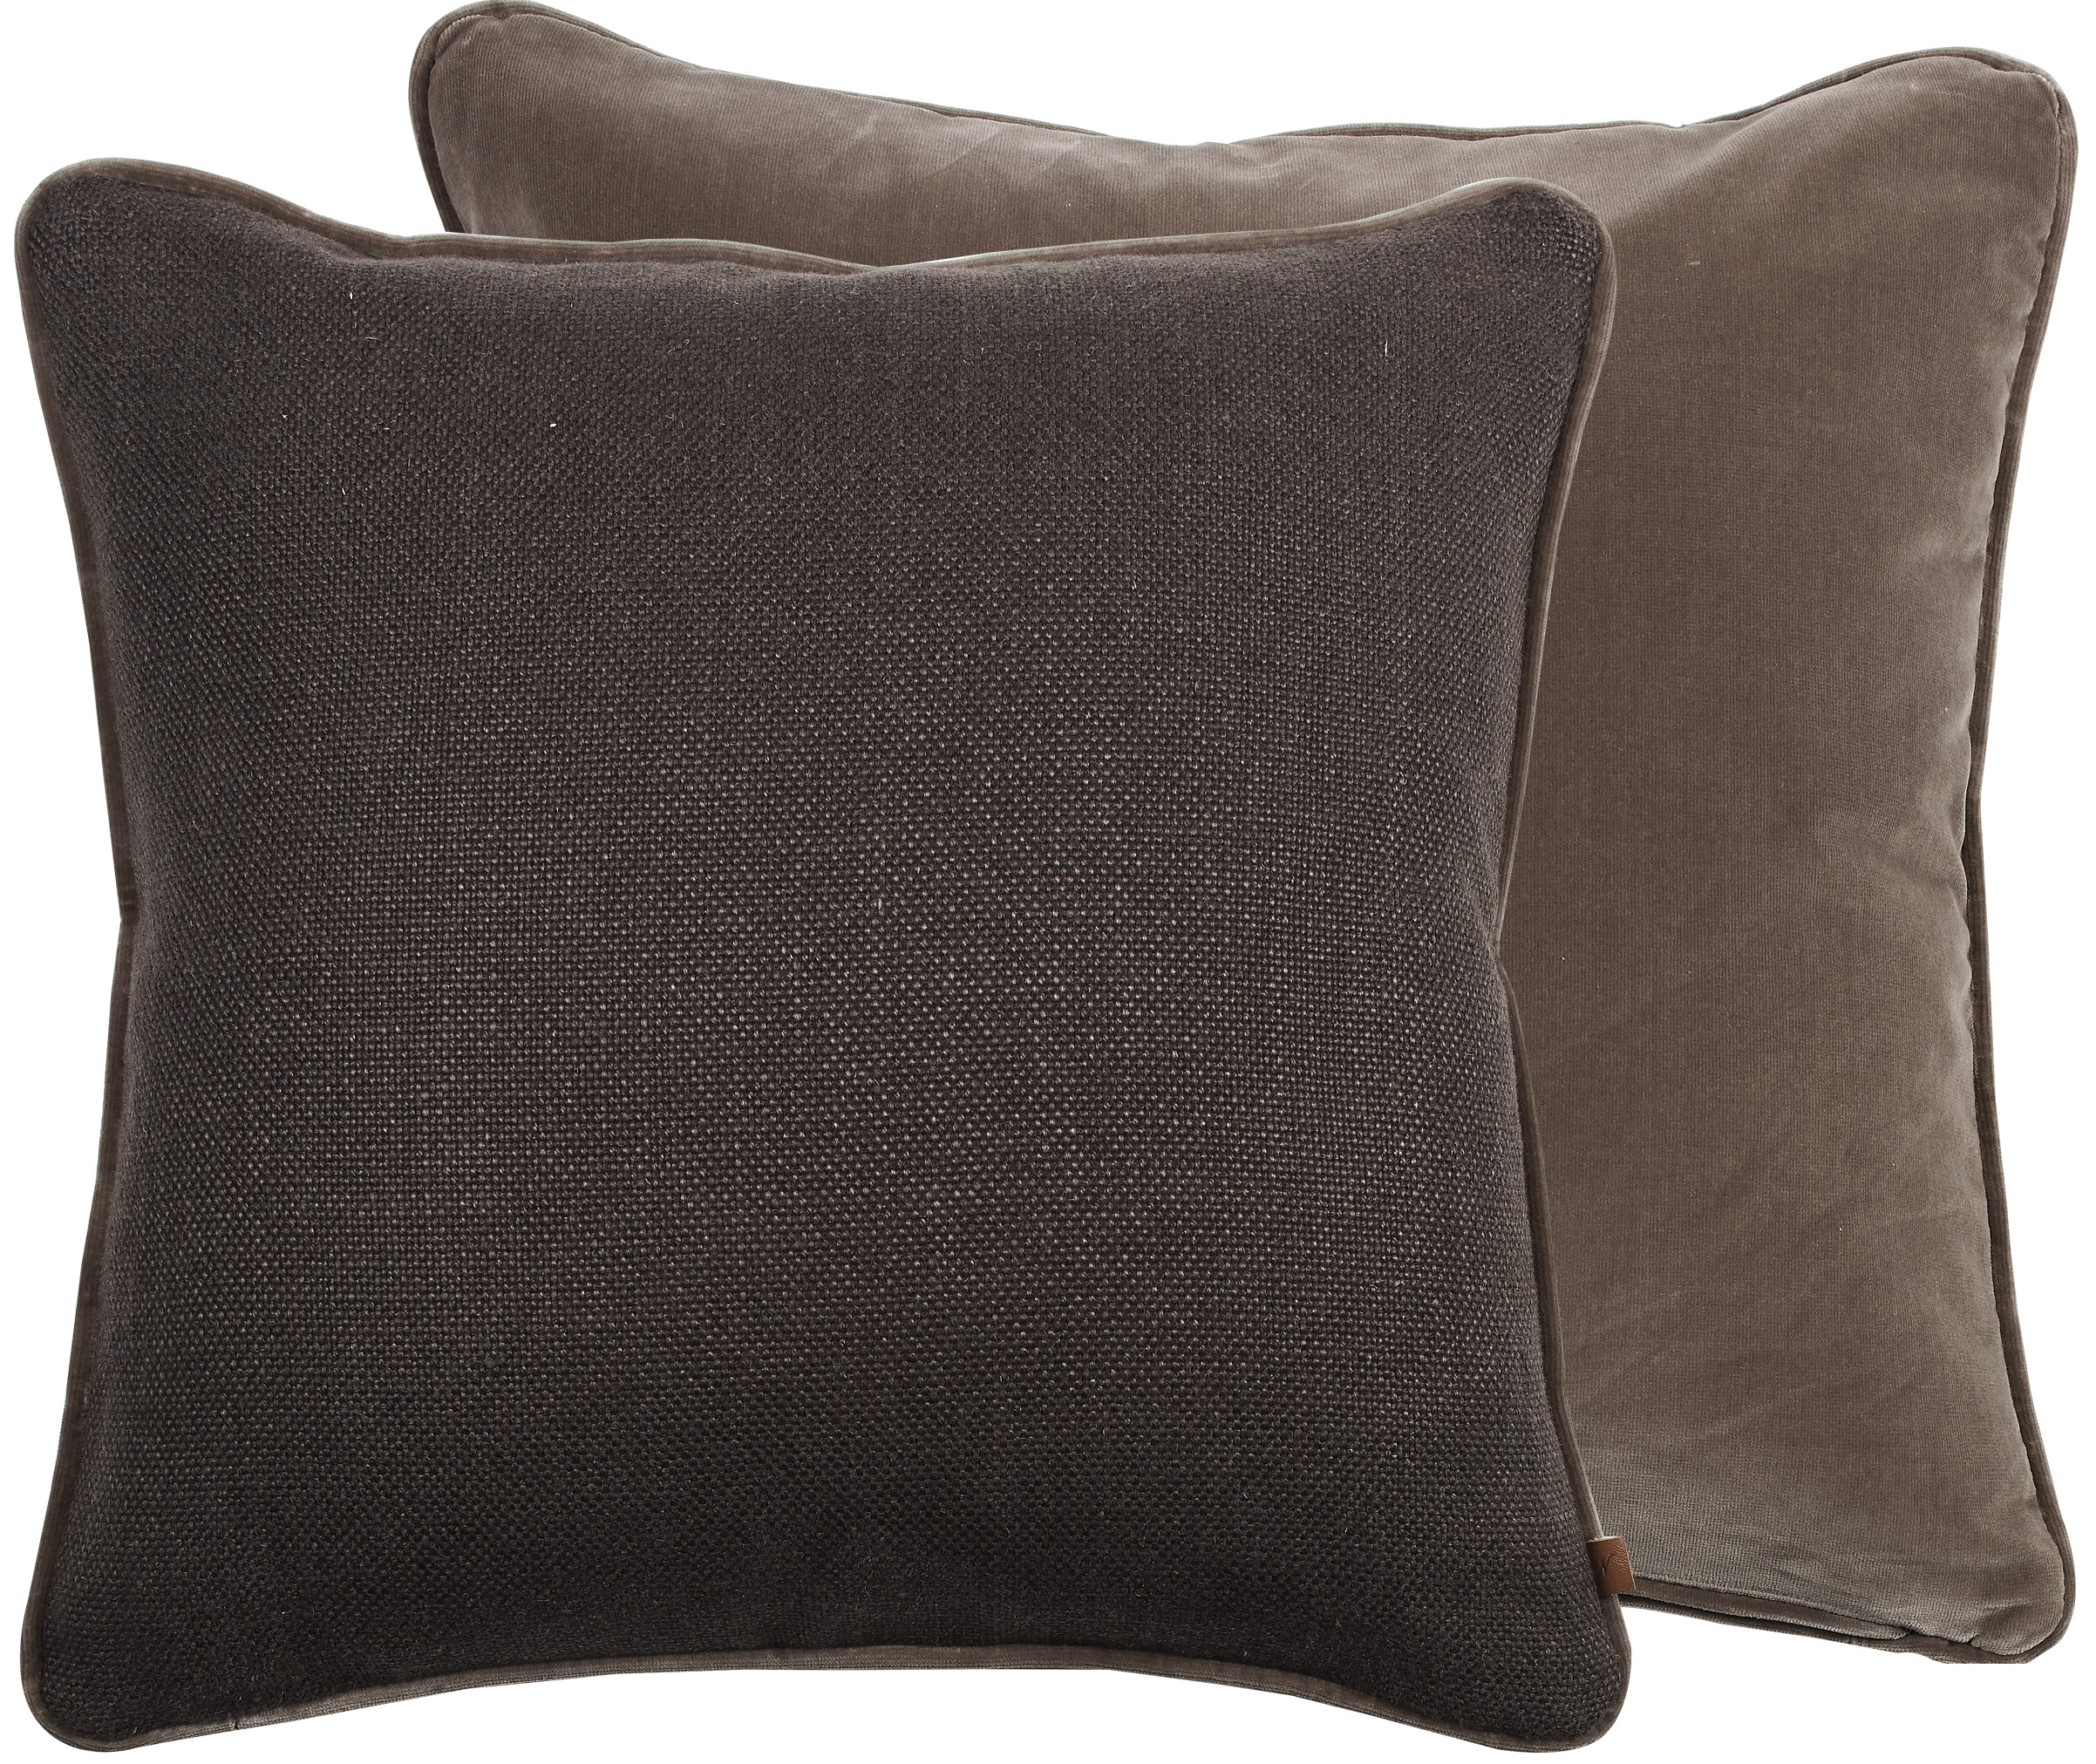 Camilla Cushion 45x45cm, Hugo Dark Rye & Isla Otter